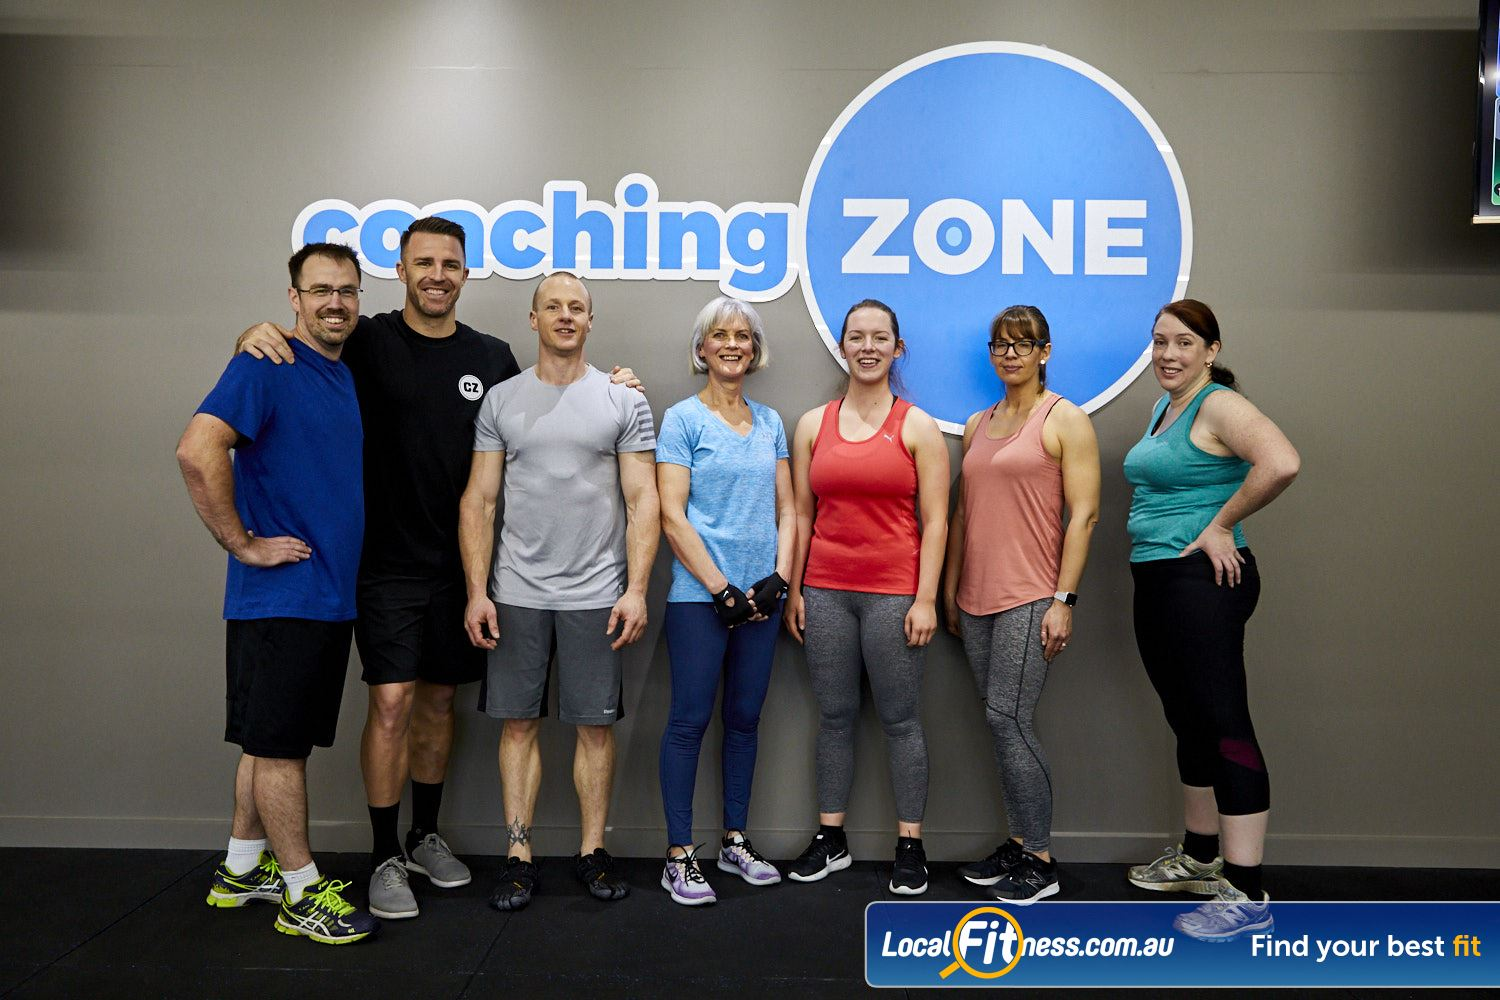 Coaching Zone Near Knoxfield Our Ferntree Gully gym classes cater for all ages and abilities.